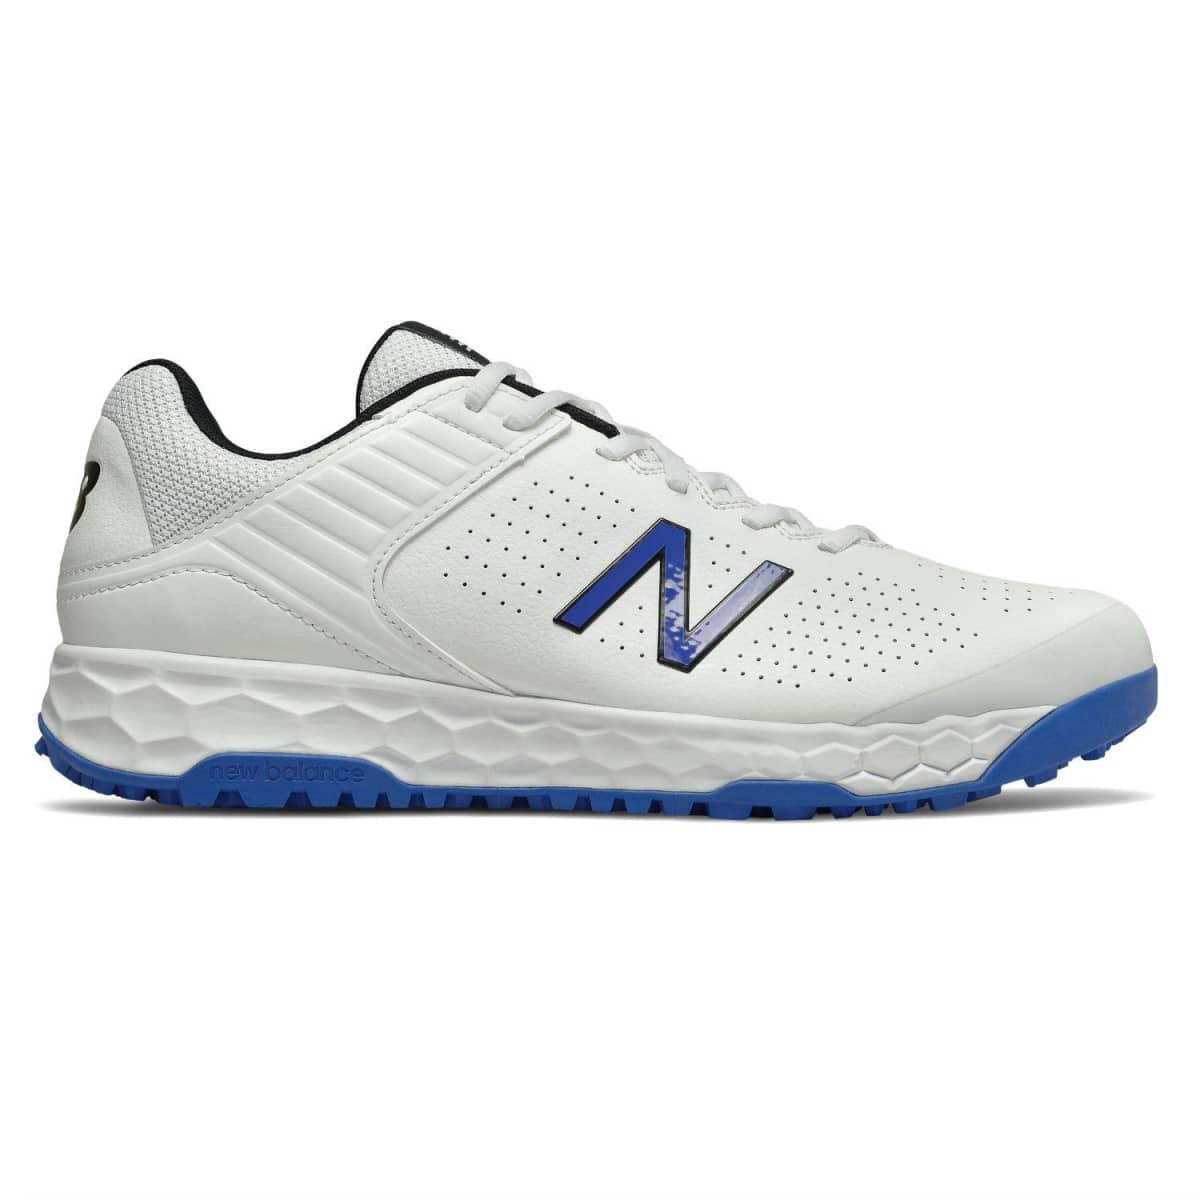 info for e8aed 7dfc0 Footwear New Balance Products   Sportsmans Warehouse